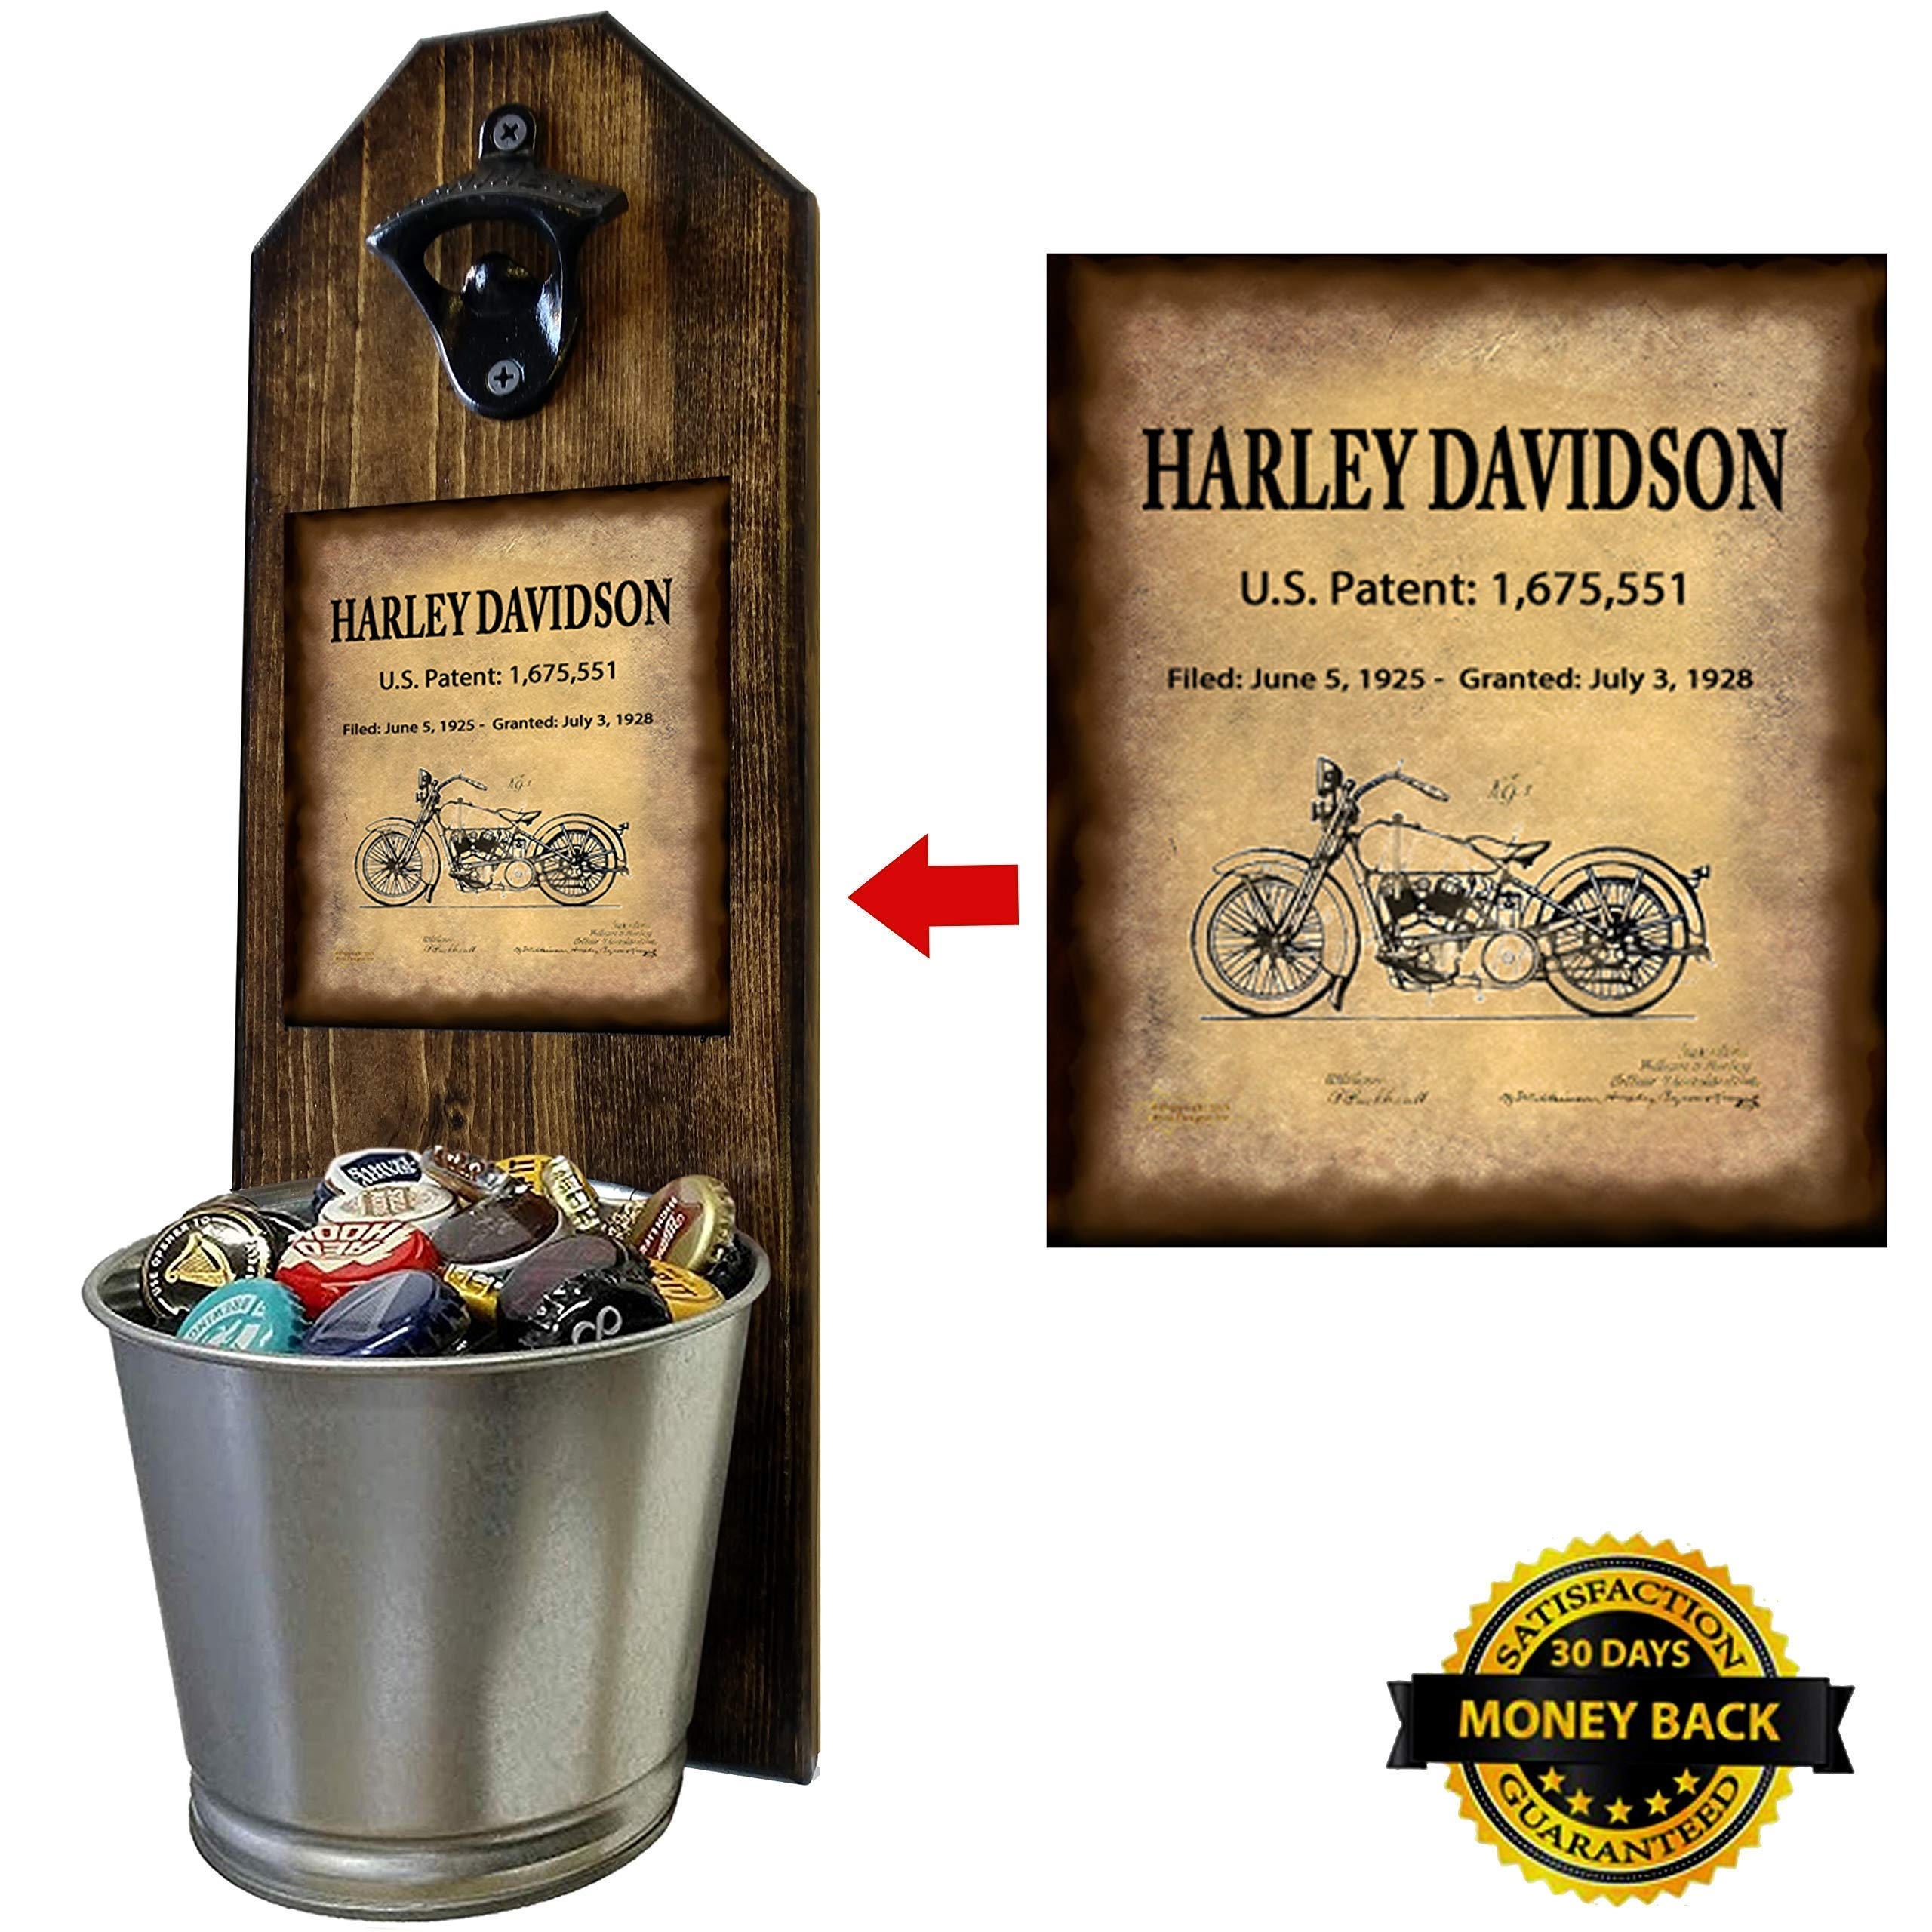 ''Harley Davidson - Motorcycle Patent of Vintage Bike'' Wall Mounted Bottle Opener and Cap Catcher - Made of 100% Solid Pine 3/4'' Thick - Rustic Cast Iron Opener and Galvanized Bucket by CherryPic Junction